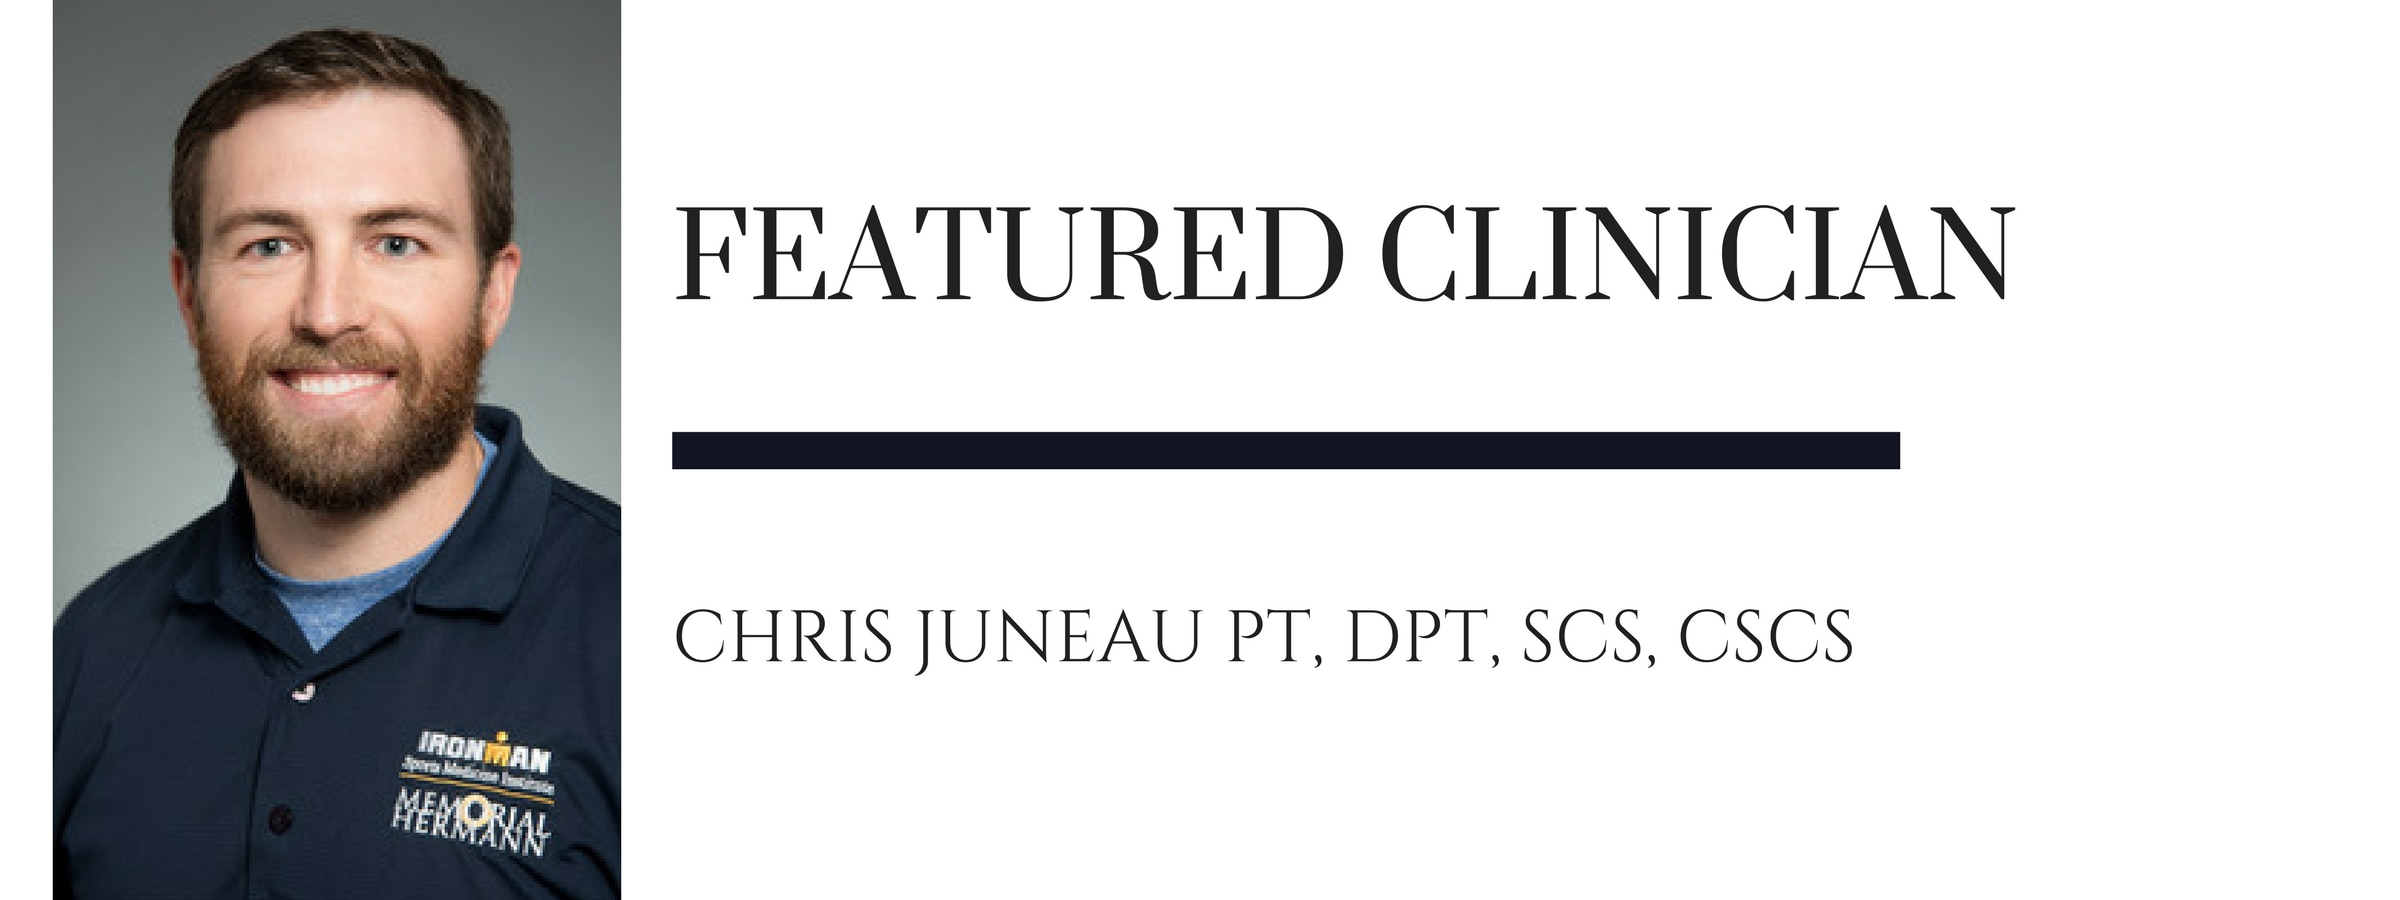 Chris Juneau PT, DPT, SCS, CSCS: iDryNeedle Featured Clinician July 2017